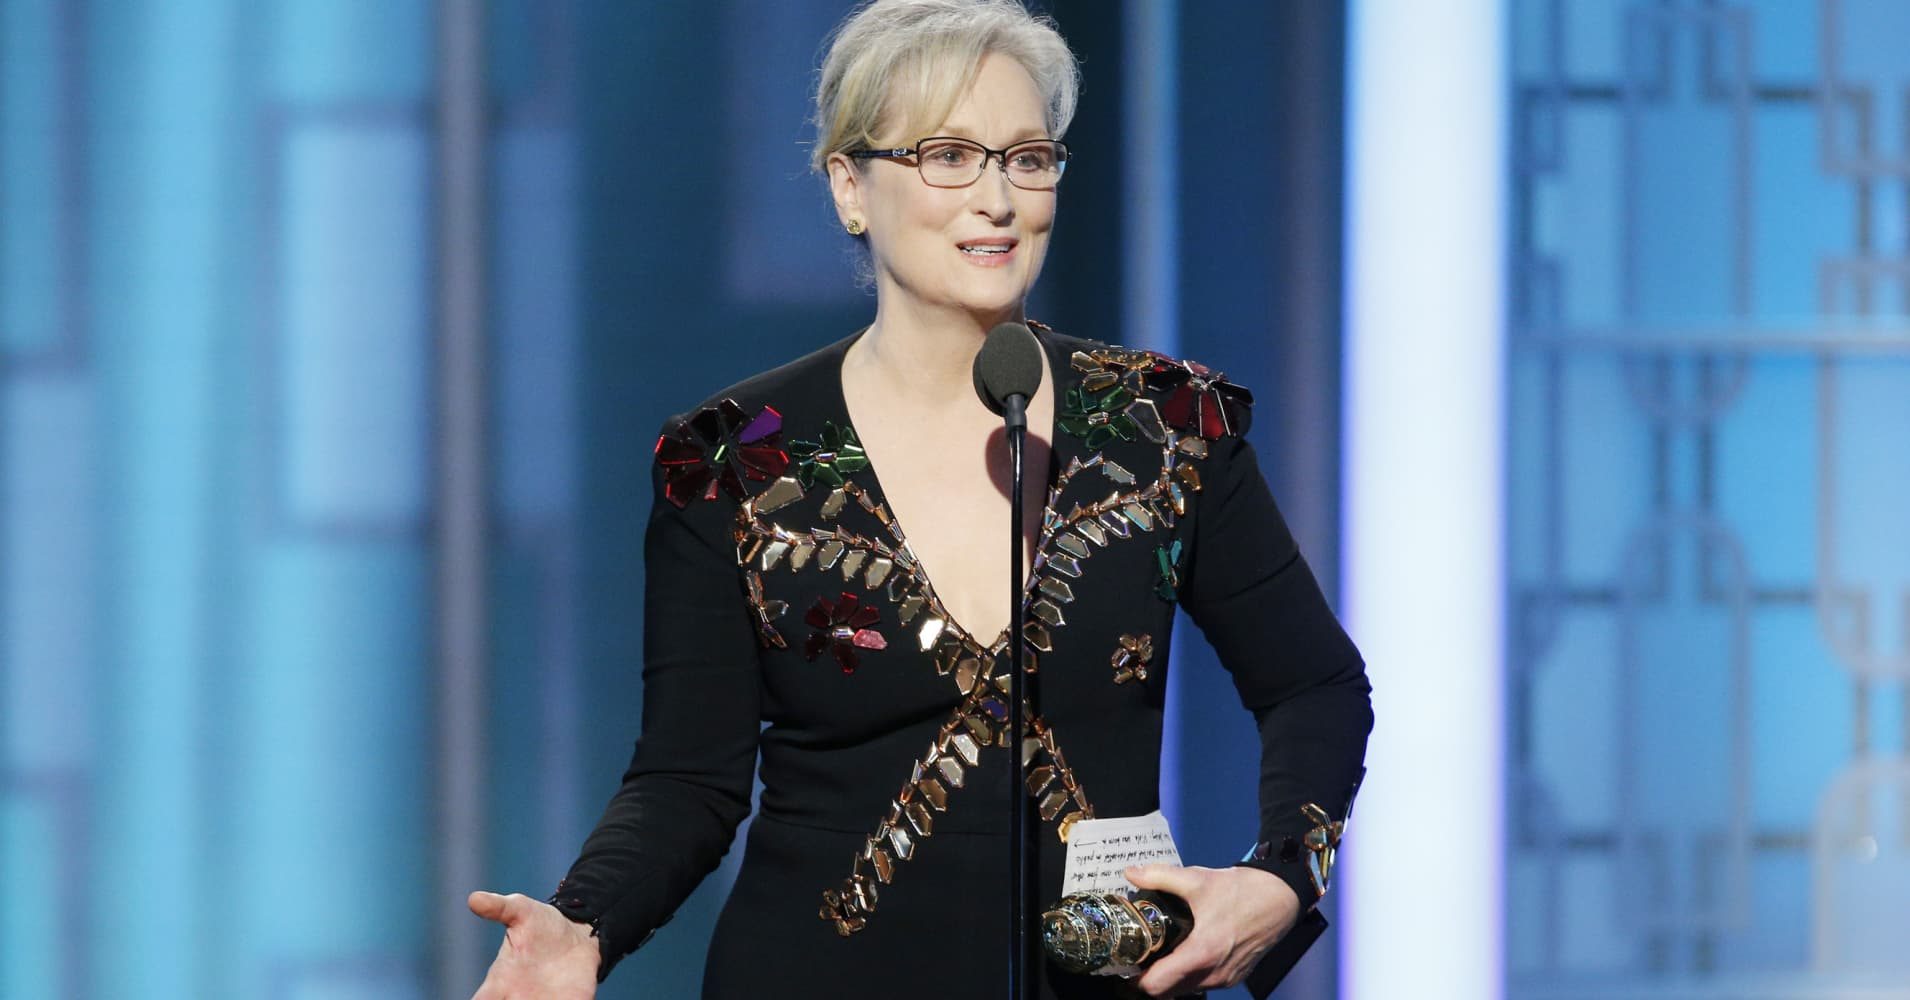 In this handout photo provided by NBCUniversal, Meryl Streep accepts Cecil B. DeMille Award during the 74th Annual Golden Globe Awards at The Beverly Hilton Hotel on January 8, 2017 in Beverly Hills, California.